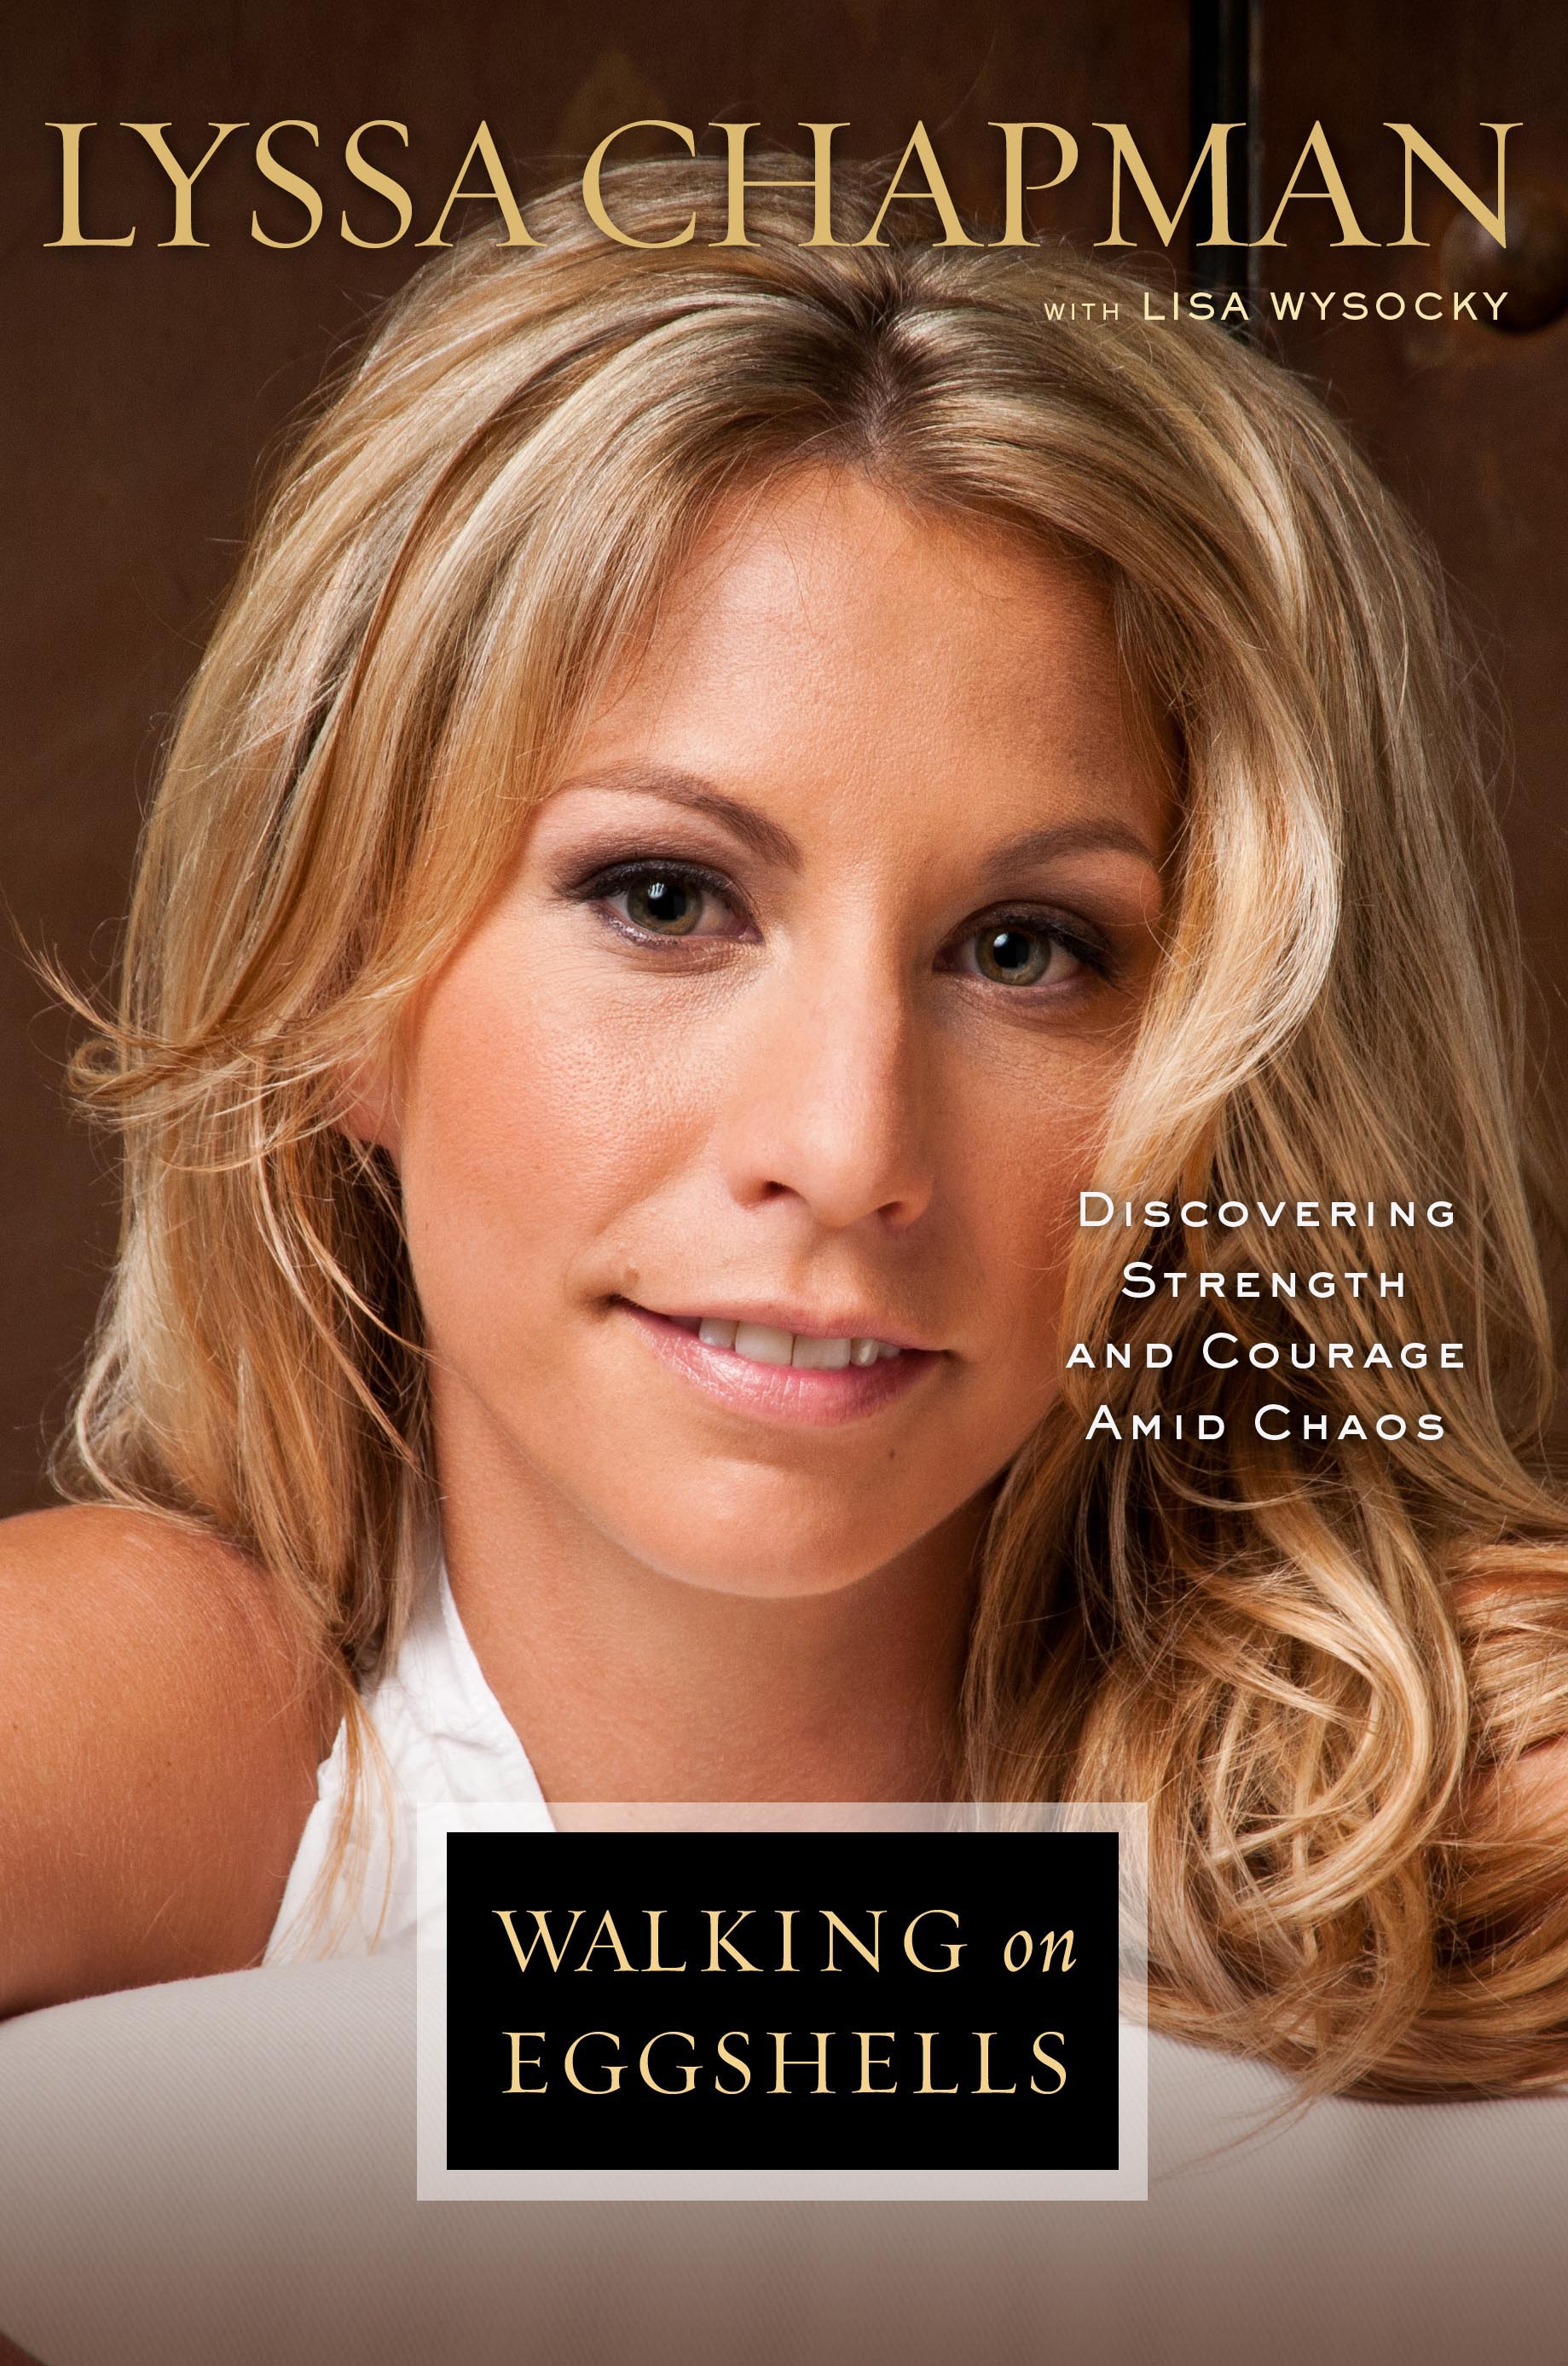 Walking on eggshells book by lyssa chapman lisa wysocky for How many kids does beth chapman have